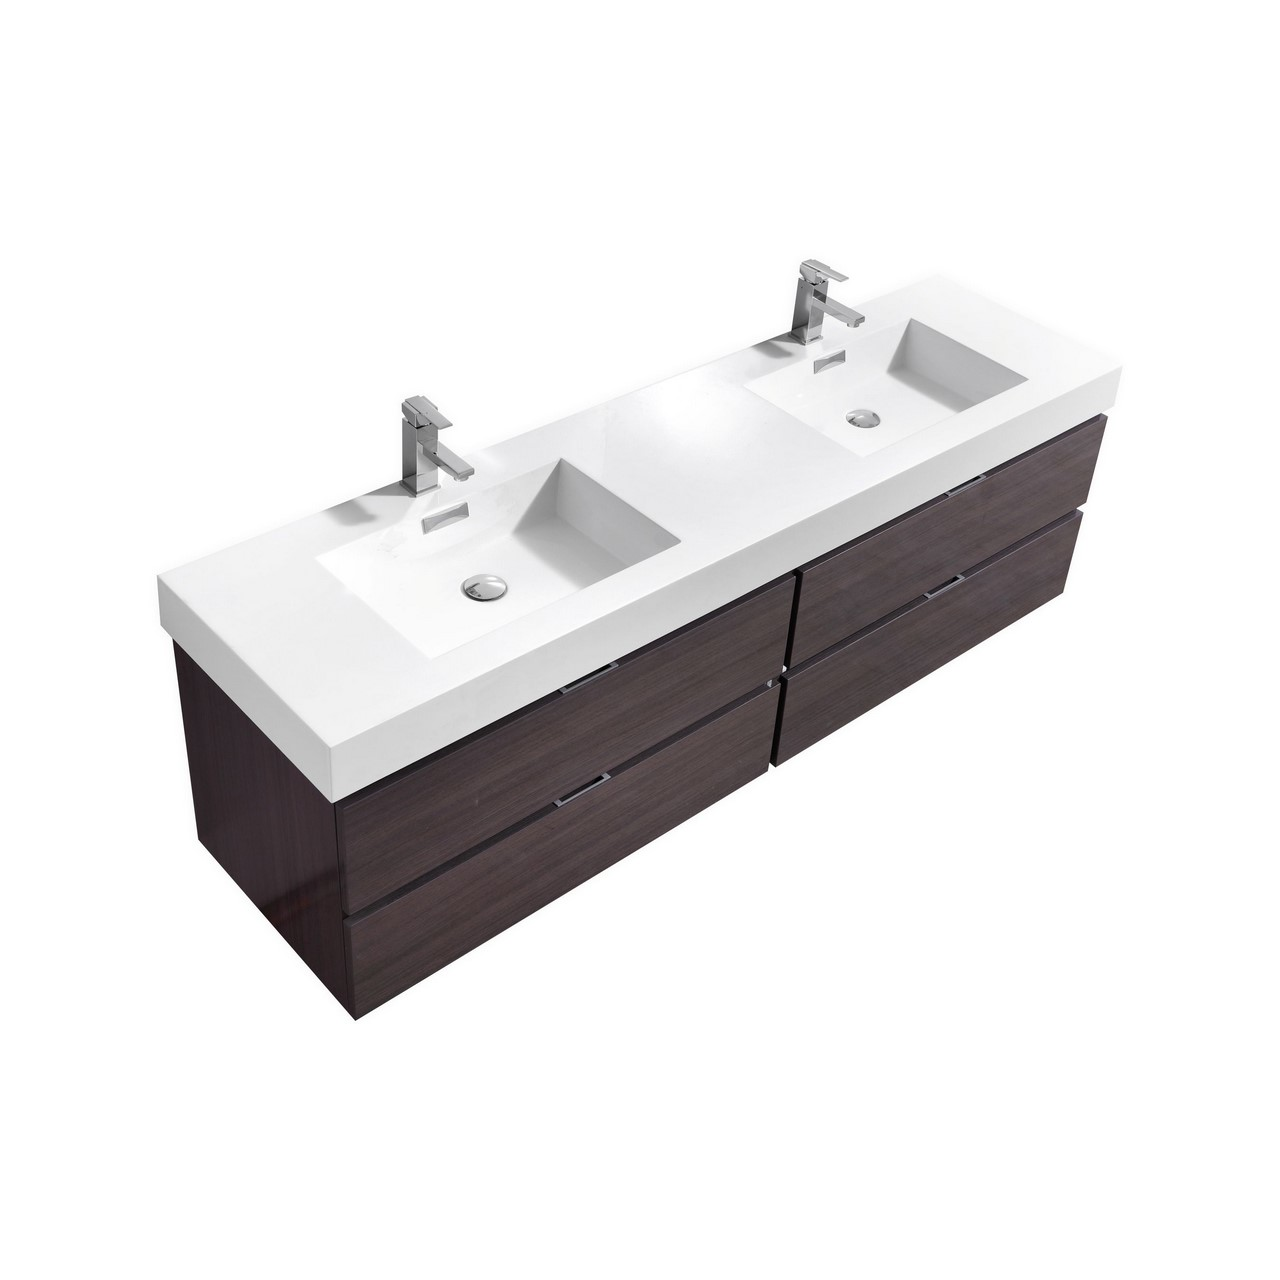 "Modern Lux 80"" Double Sink High Gloss Gray Oak Wall Mount Modern Bathroom Vanity"